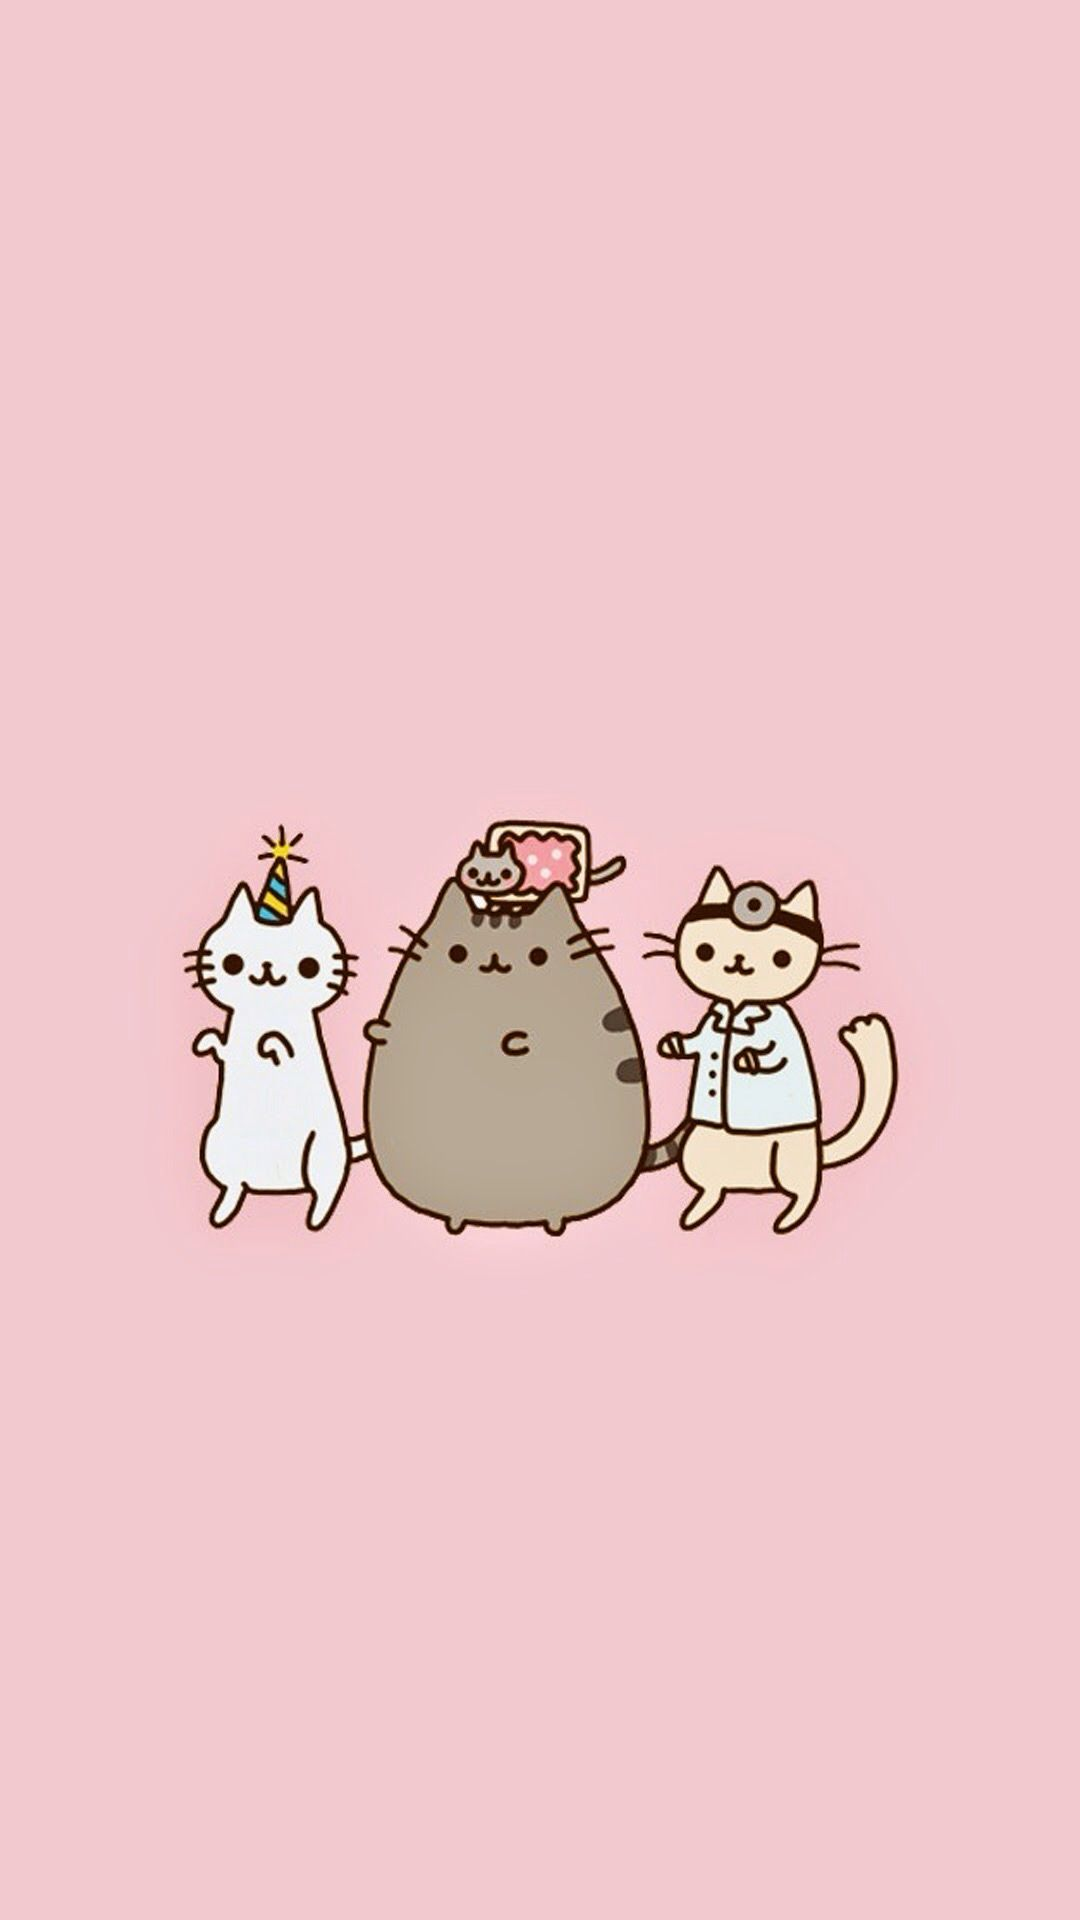 Pusheen wallpaper Pusheen cat, Pusheen cute, Cat wallpaper